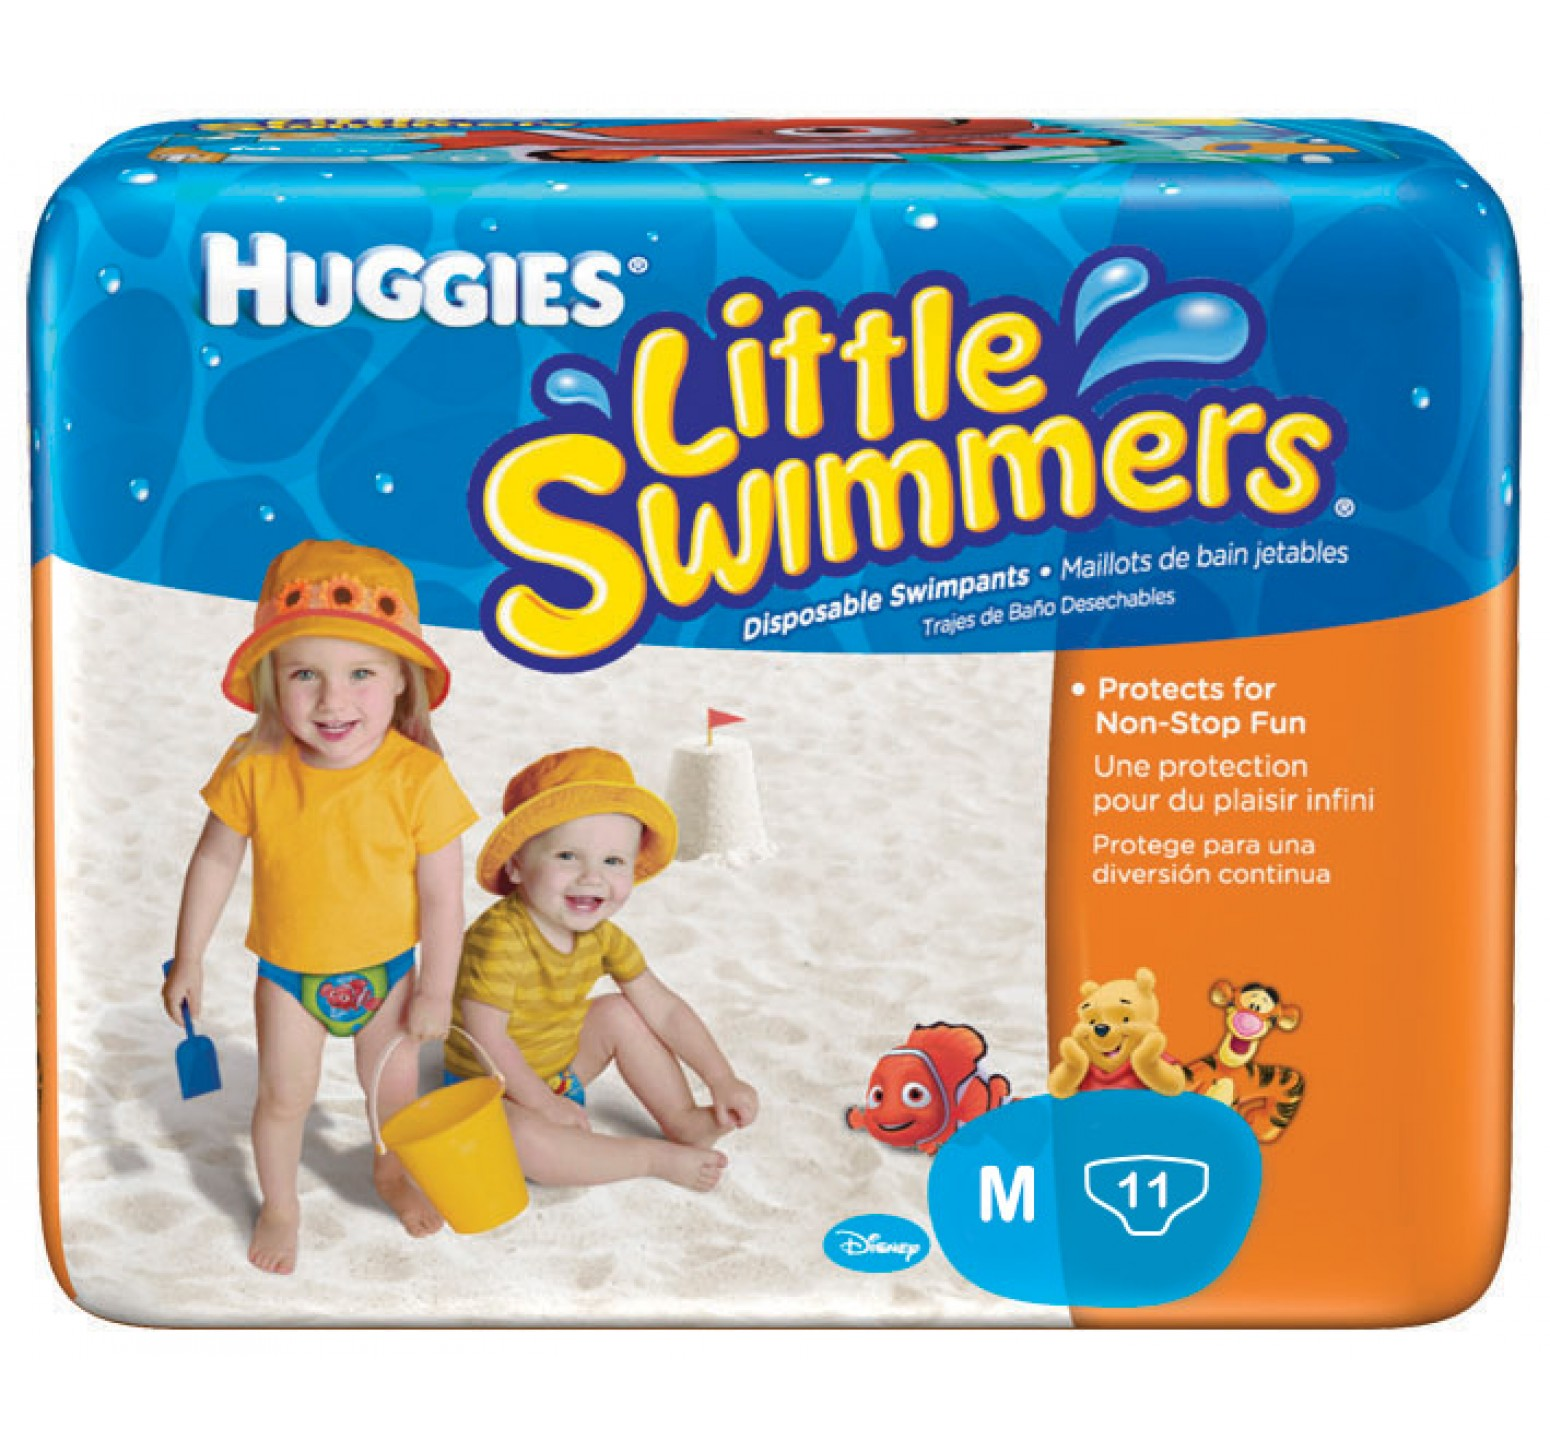 Huggies Little Swimmers [M] 11 unidades